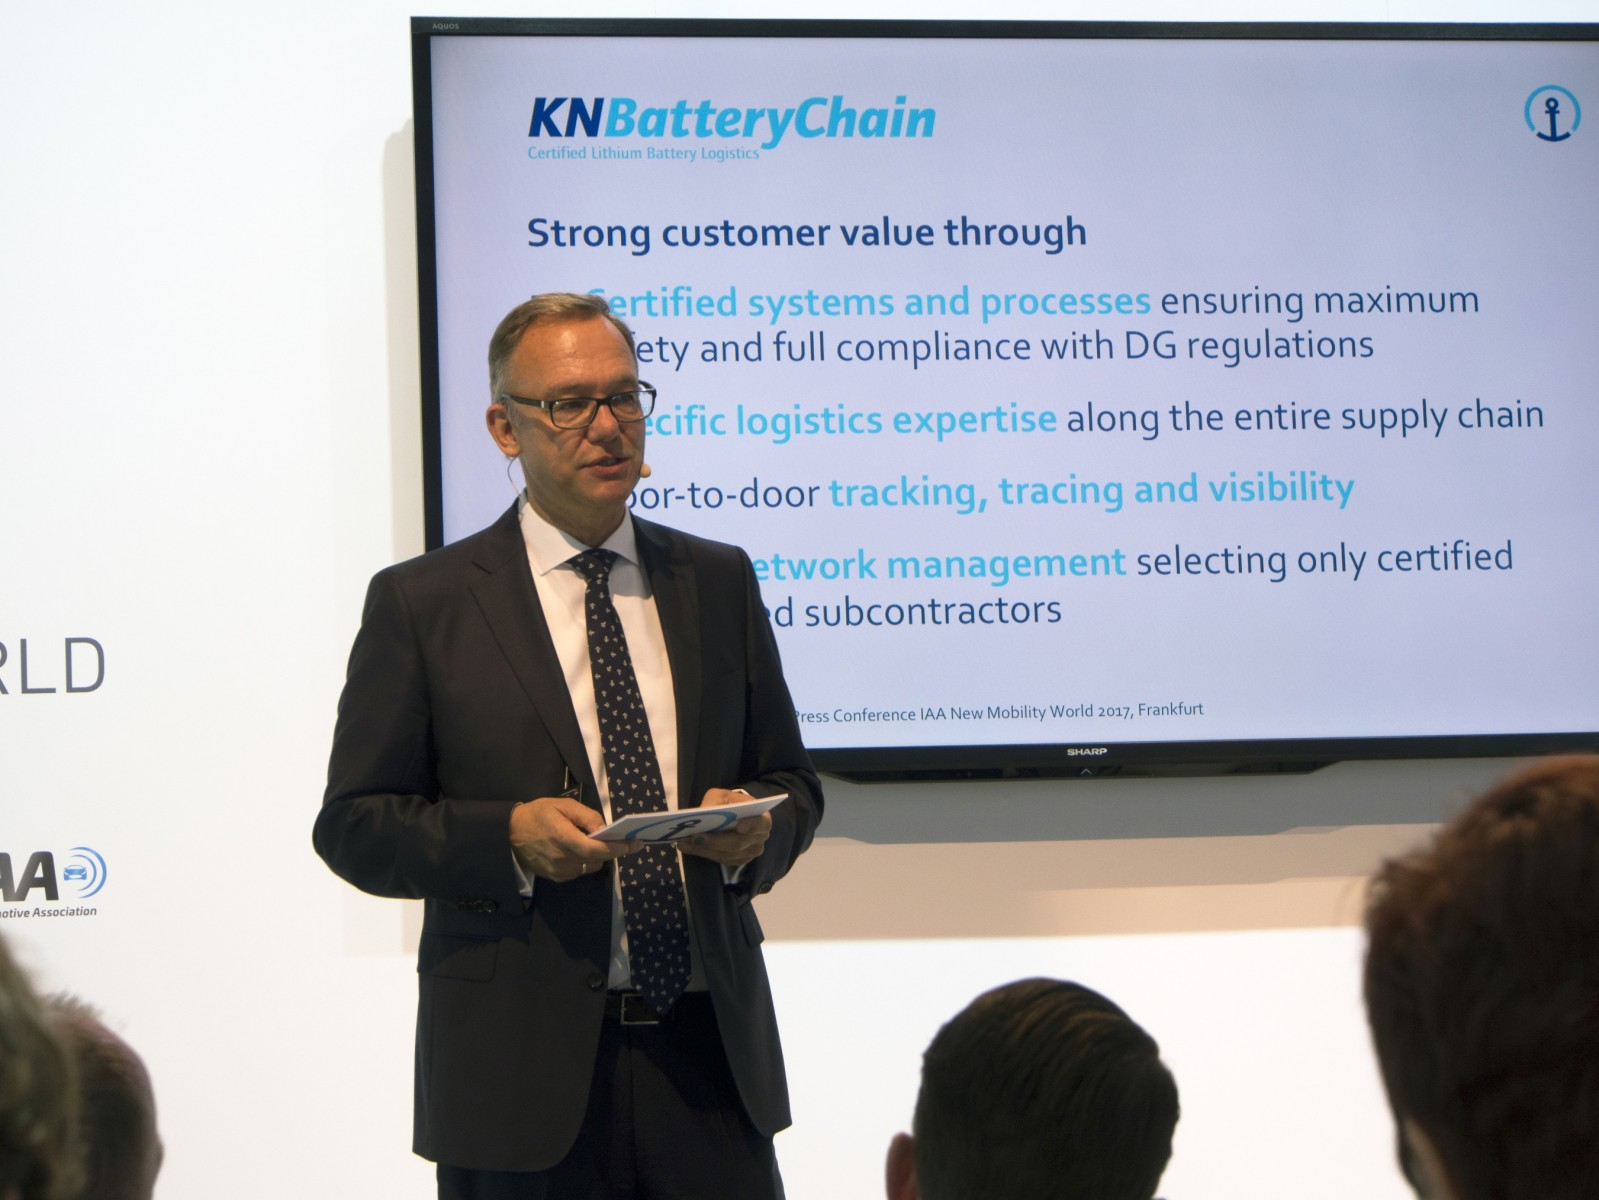 Dr. Detlef Trefzger, CEO Kuehne + Nagel International AG, speaking at the New Mobility World 2017 (IAA) in Frankfurt, Germany